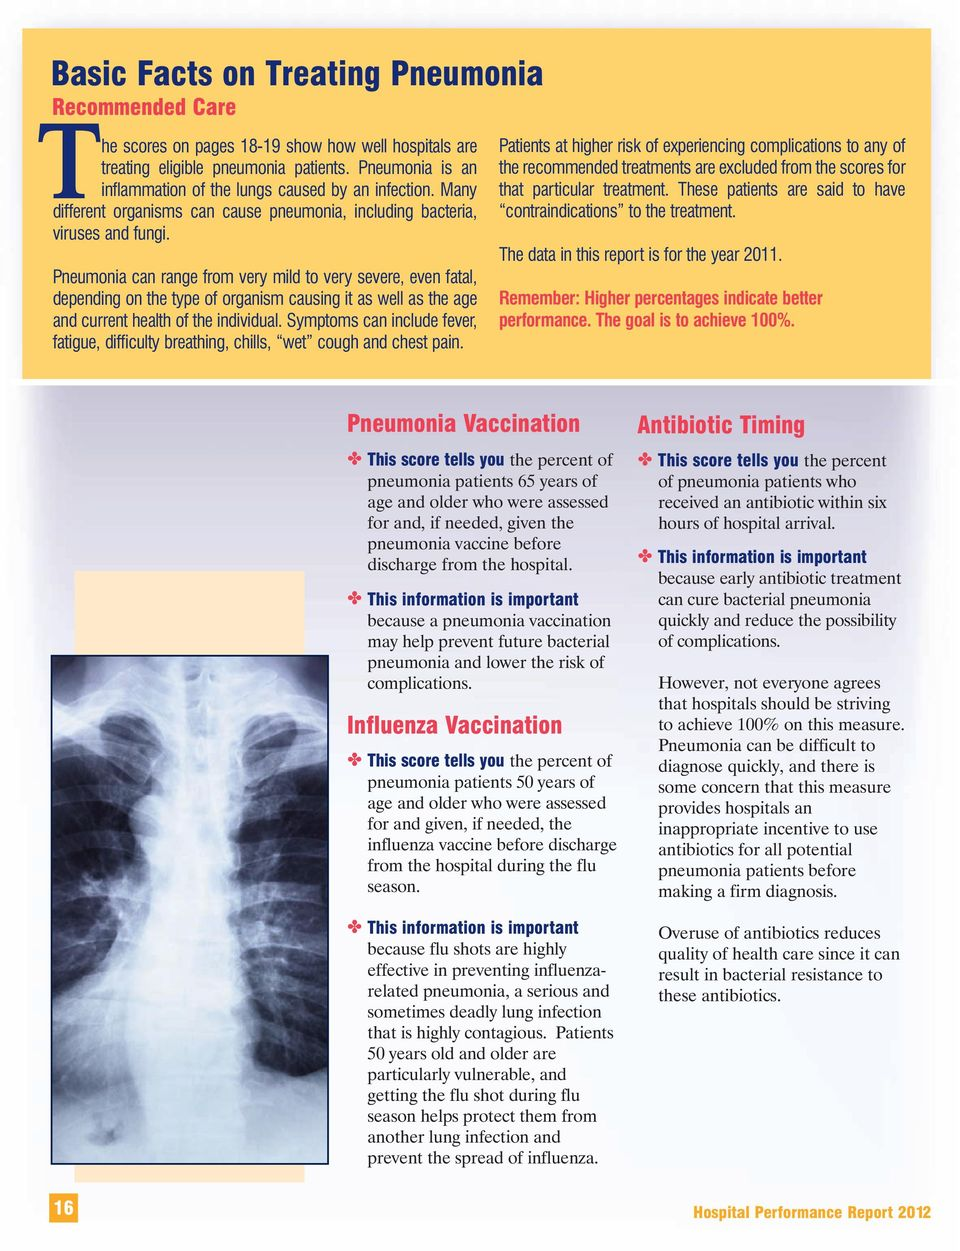 Pneumonia can range from very mild to very severe, even fatal, depending on the type of organism causing it as well as the age and current health of the individual.